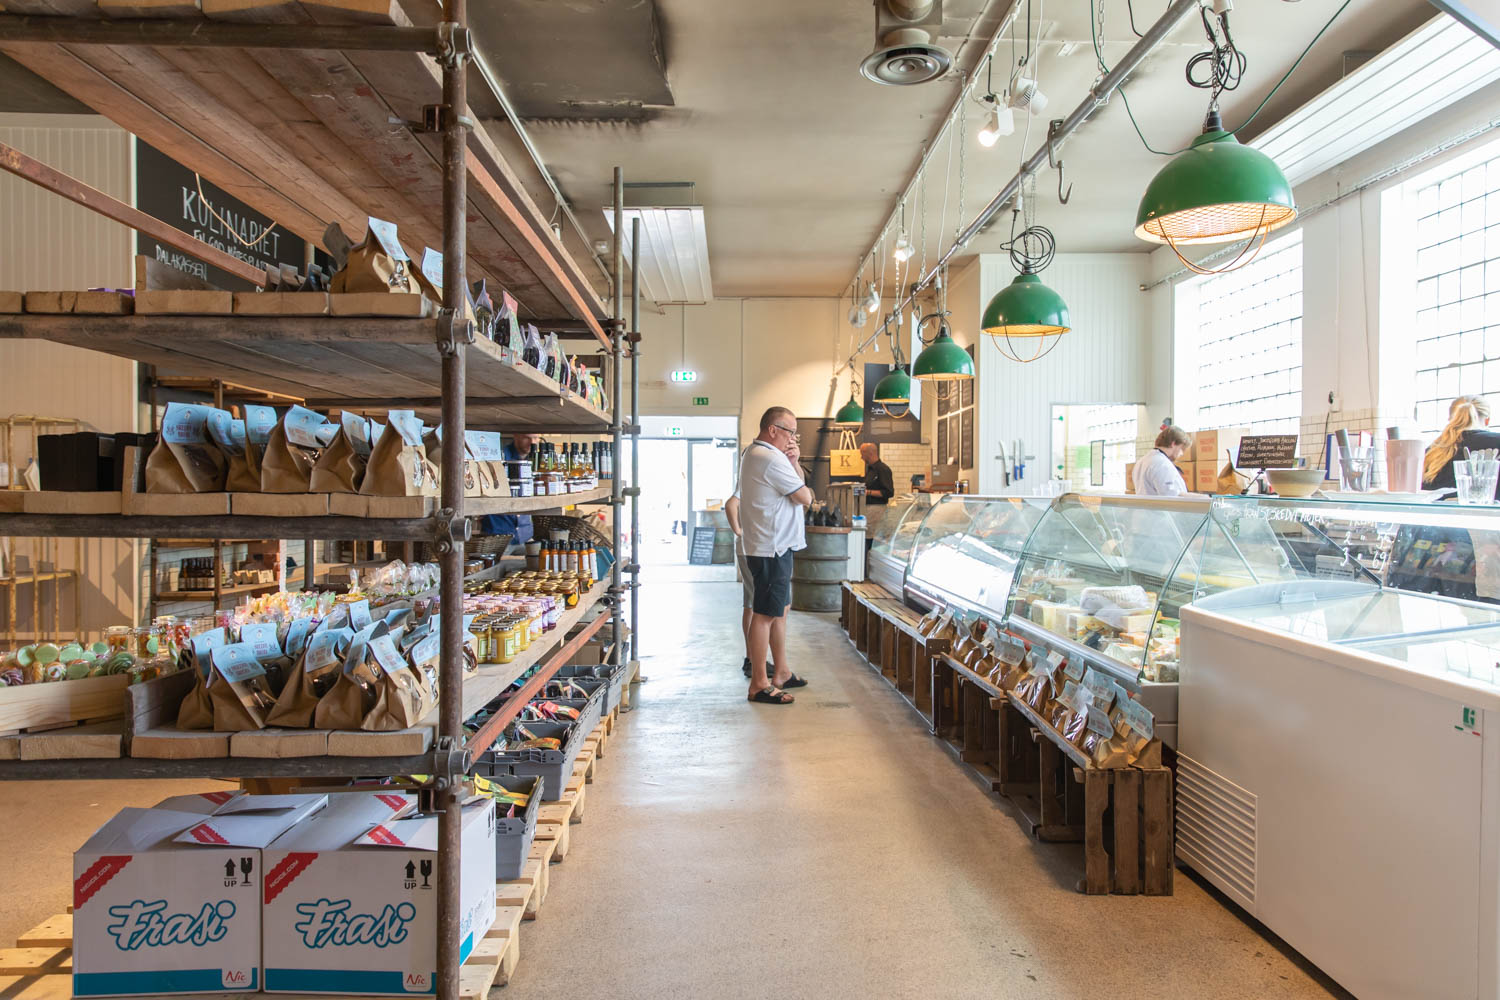 Visthusboden - A covered market with delicacies